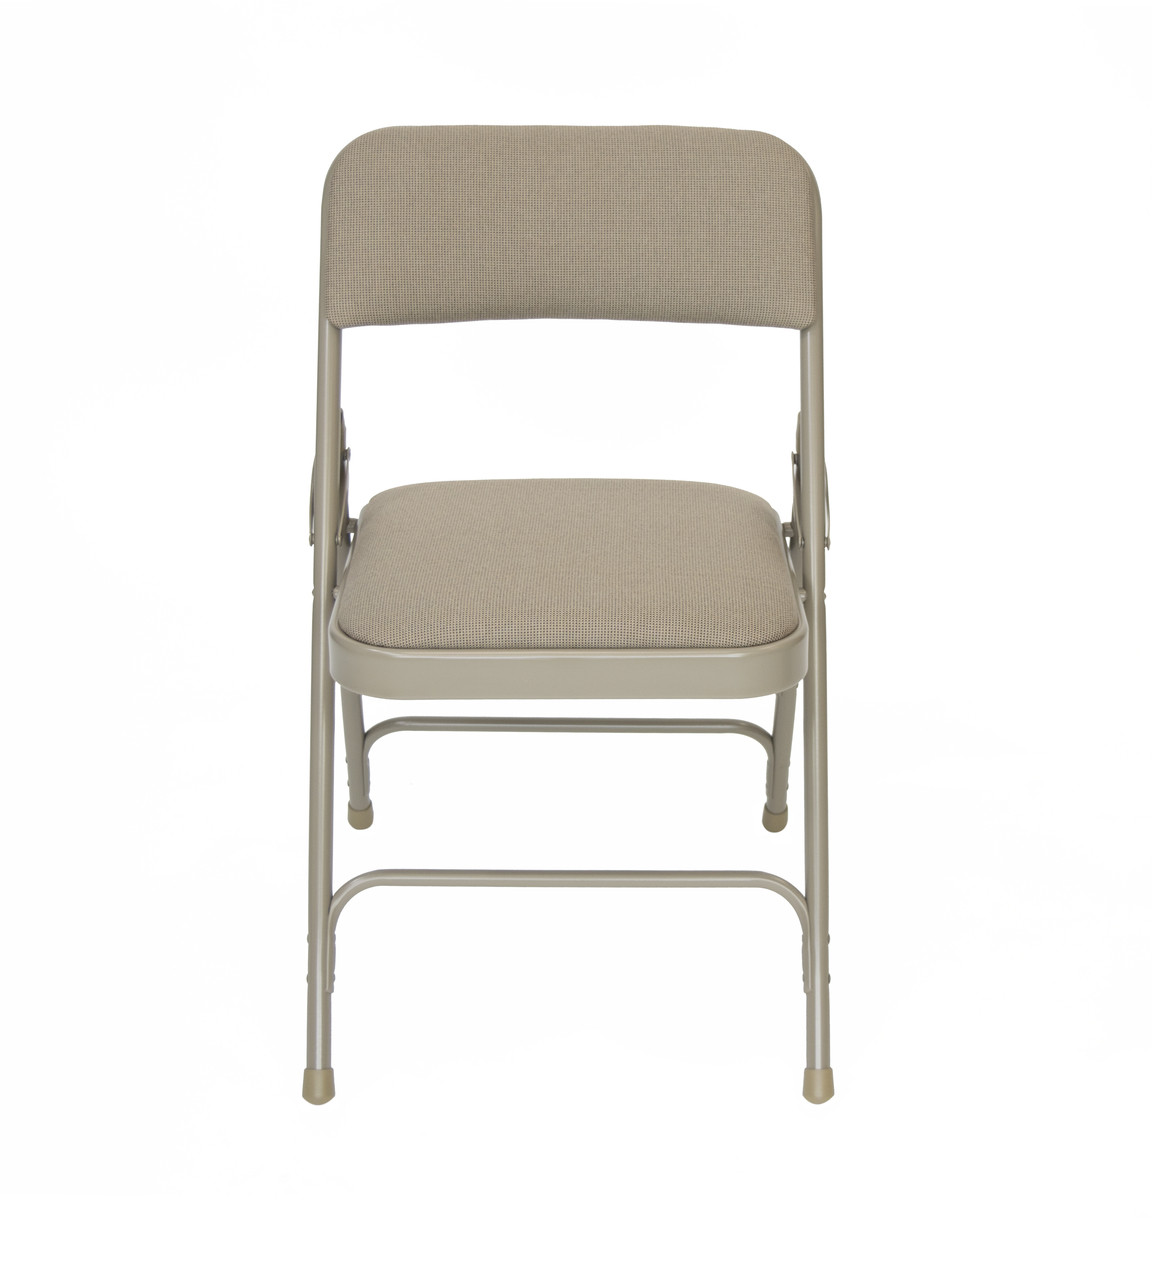 cloth padded folding chairs pier one imports chair covers rhino fabric quad hinged triple